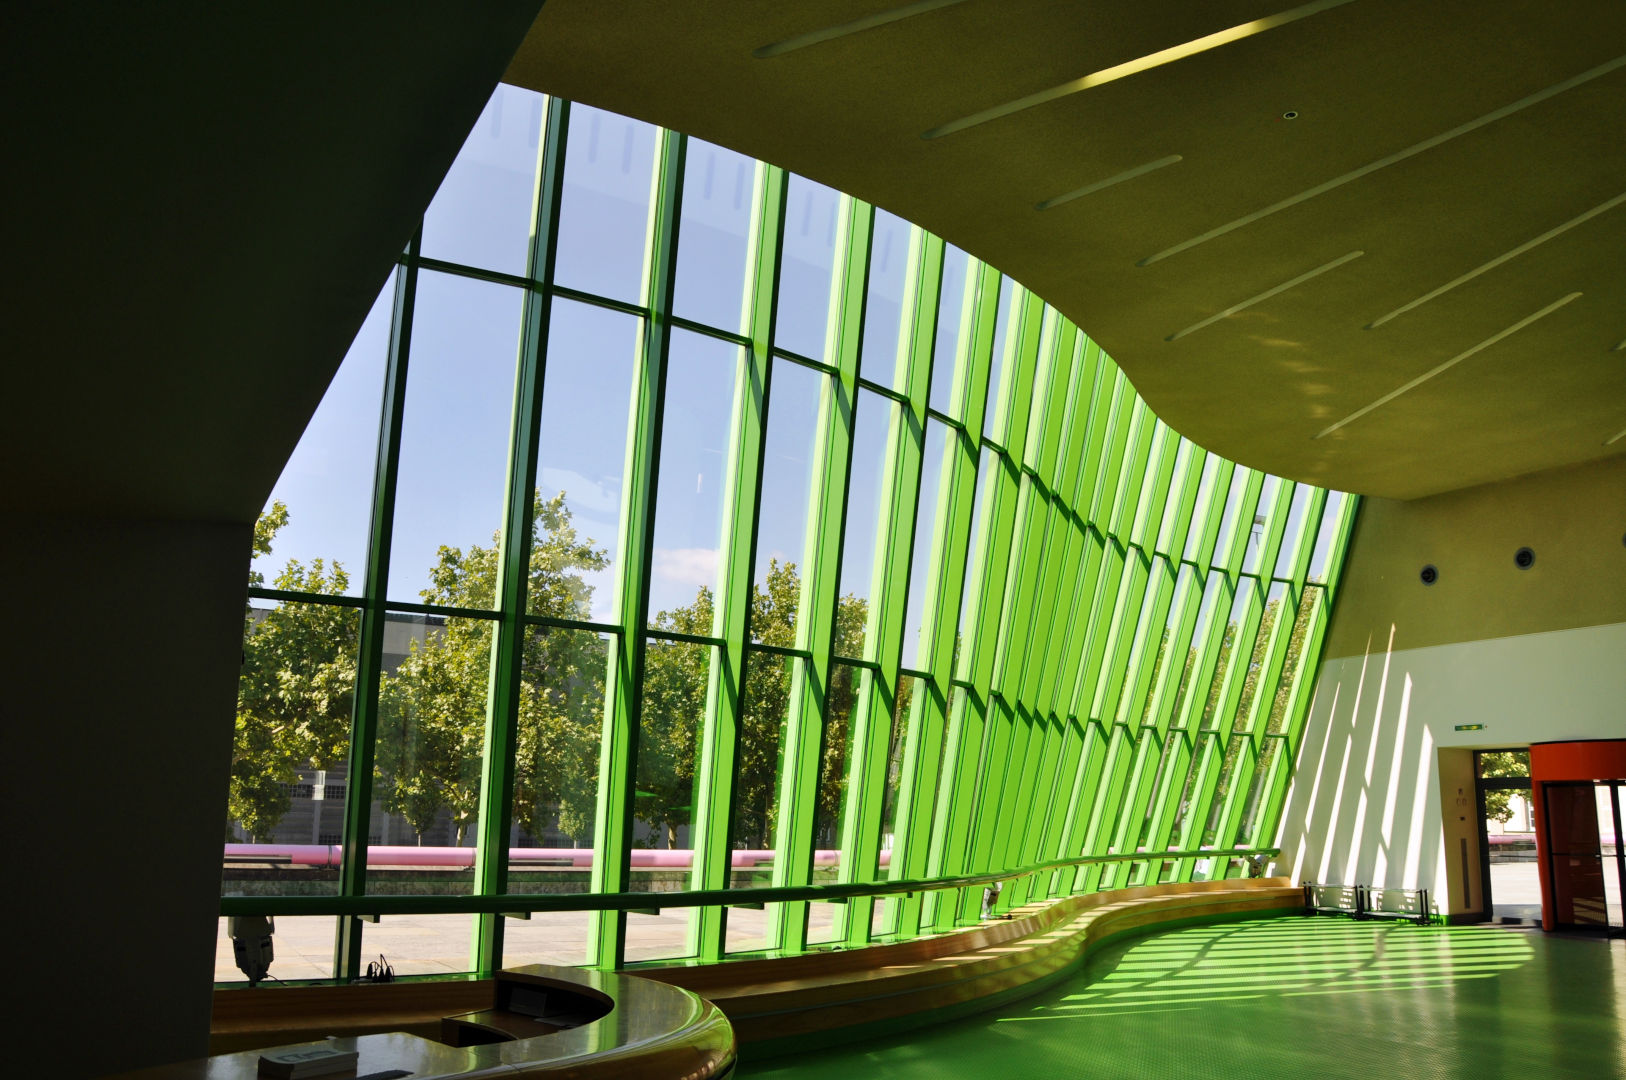 Fig.2 - JAMES STIRLING & MICHAEL WILFORD, membrana vetrata vista dal centro informazioni, Neue Staatsgalerie, Stuttgart, 1979 – 1984, foto Jaime Silva on Flickr (23 agosto 2009, Creative Commons – Attribuzione non commerciale)